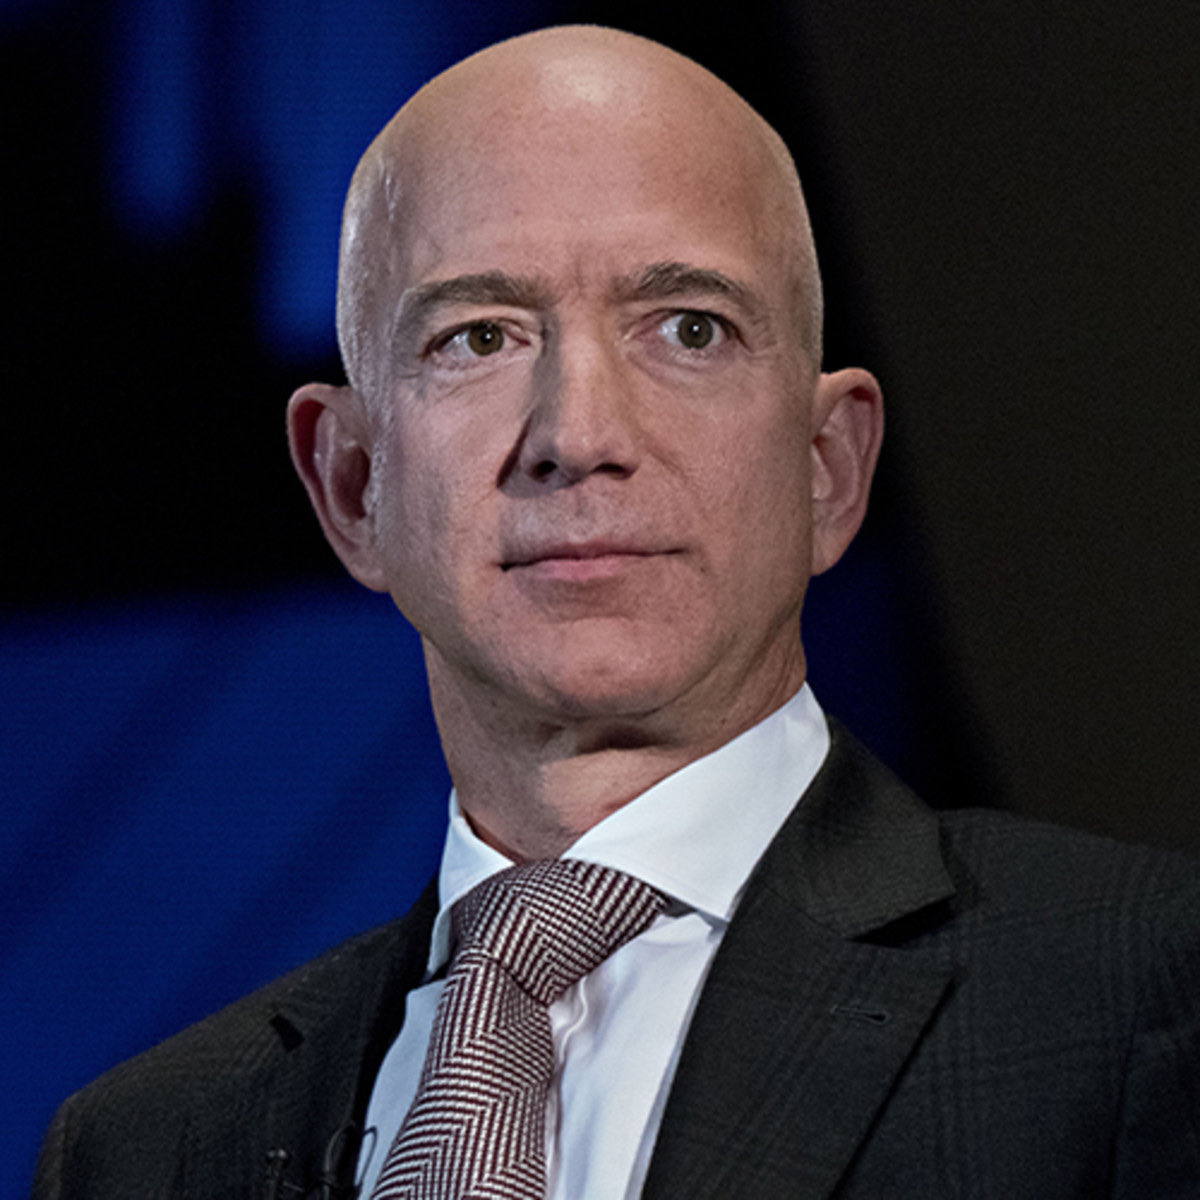 """This is what an actual """"looter"""" looks like.   How do we have more disdain for a desperate person taking items from Target than a man making billions at the expense of our collective?   Now more than ever, we must stand up to the tyranny of the ruling class.  #protests #JeffBezos"""